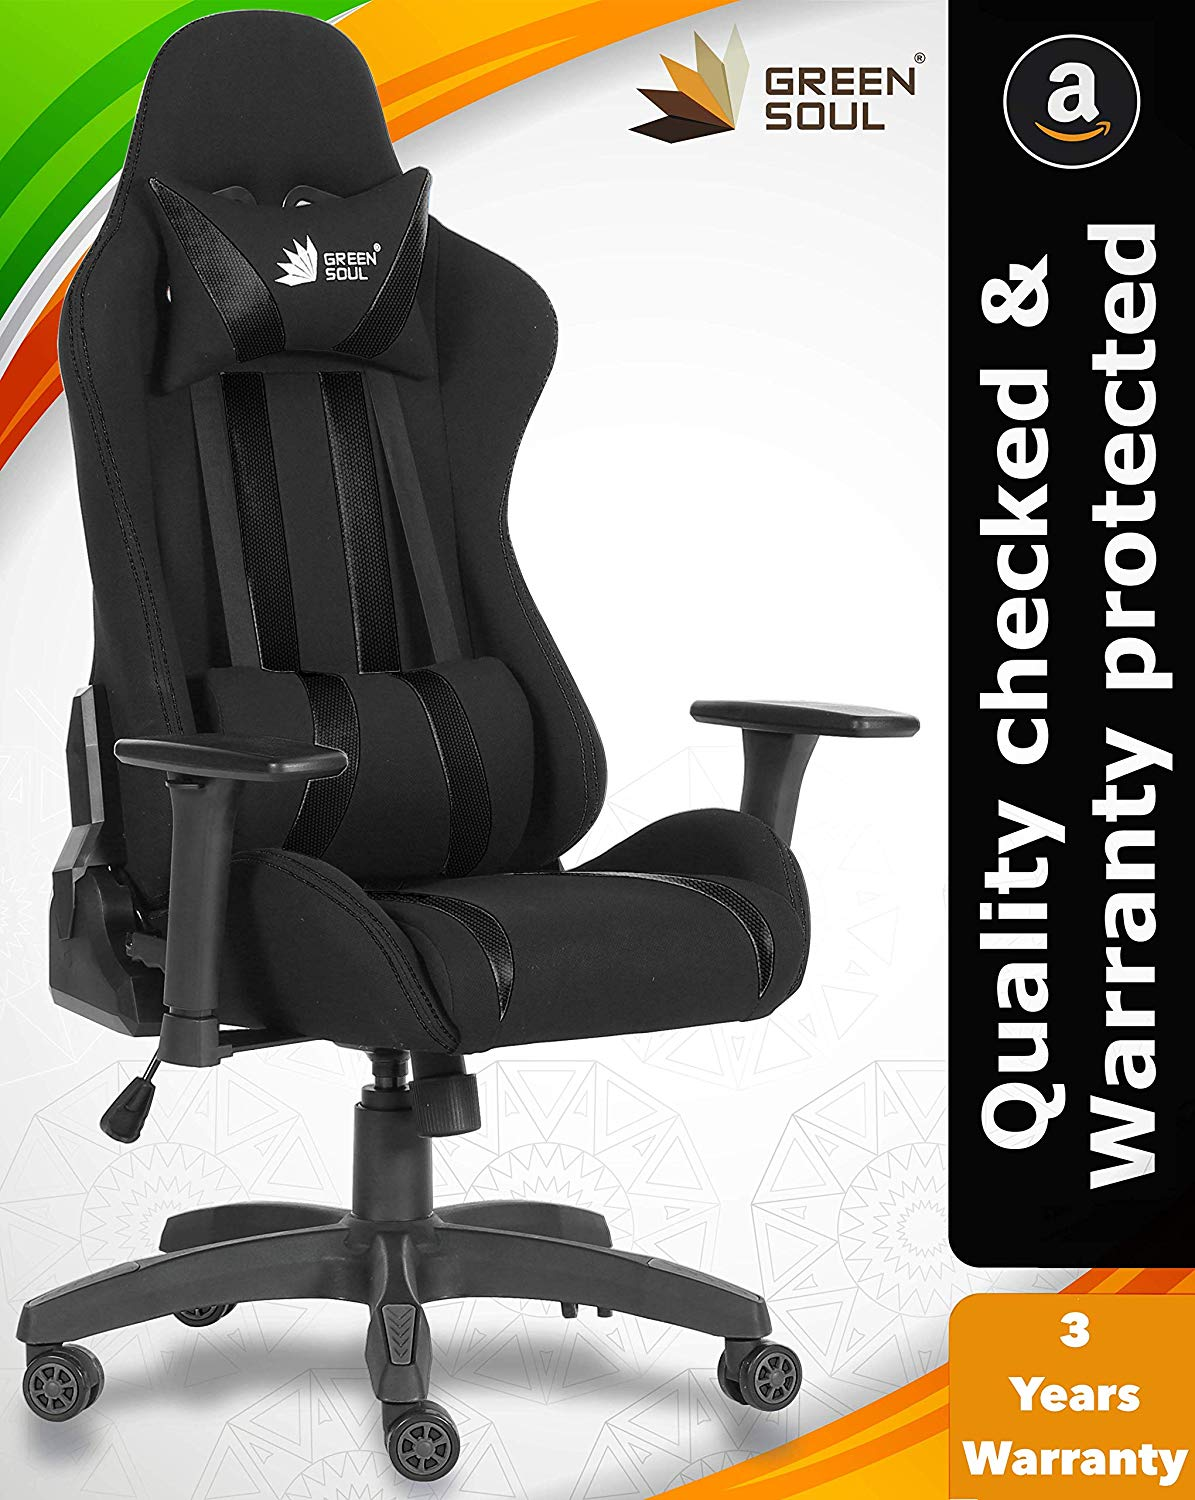 GreenSoul Beast GS-600 Gaming Ergonomic Chair